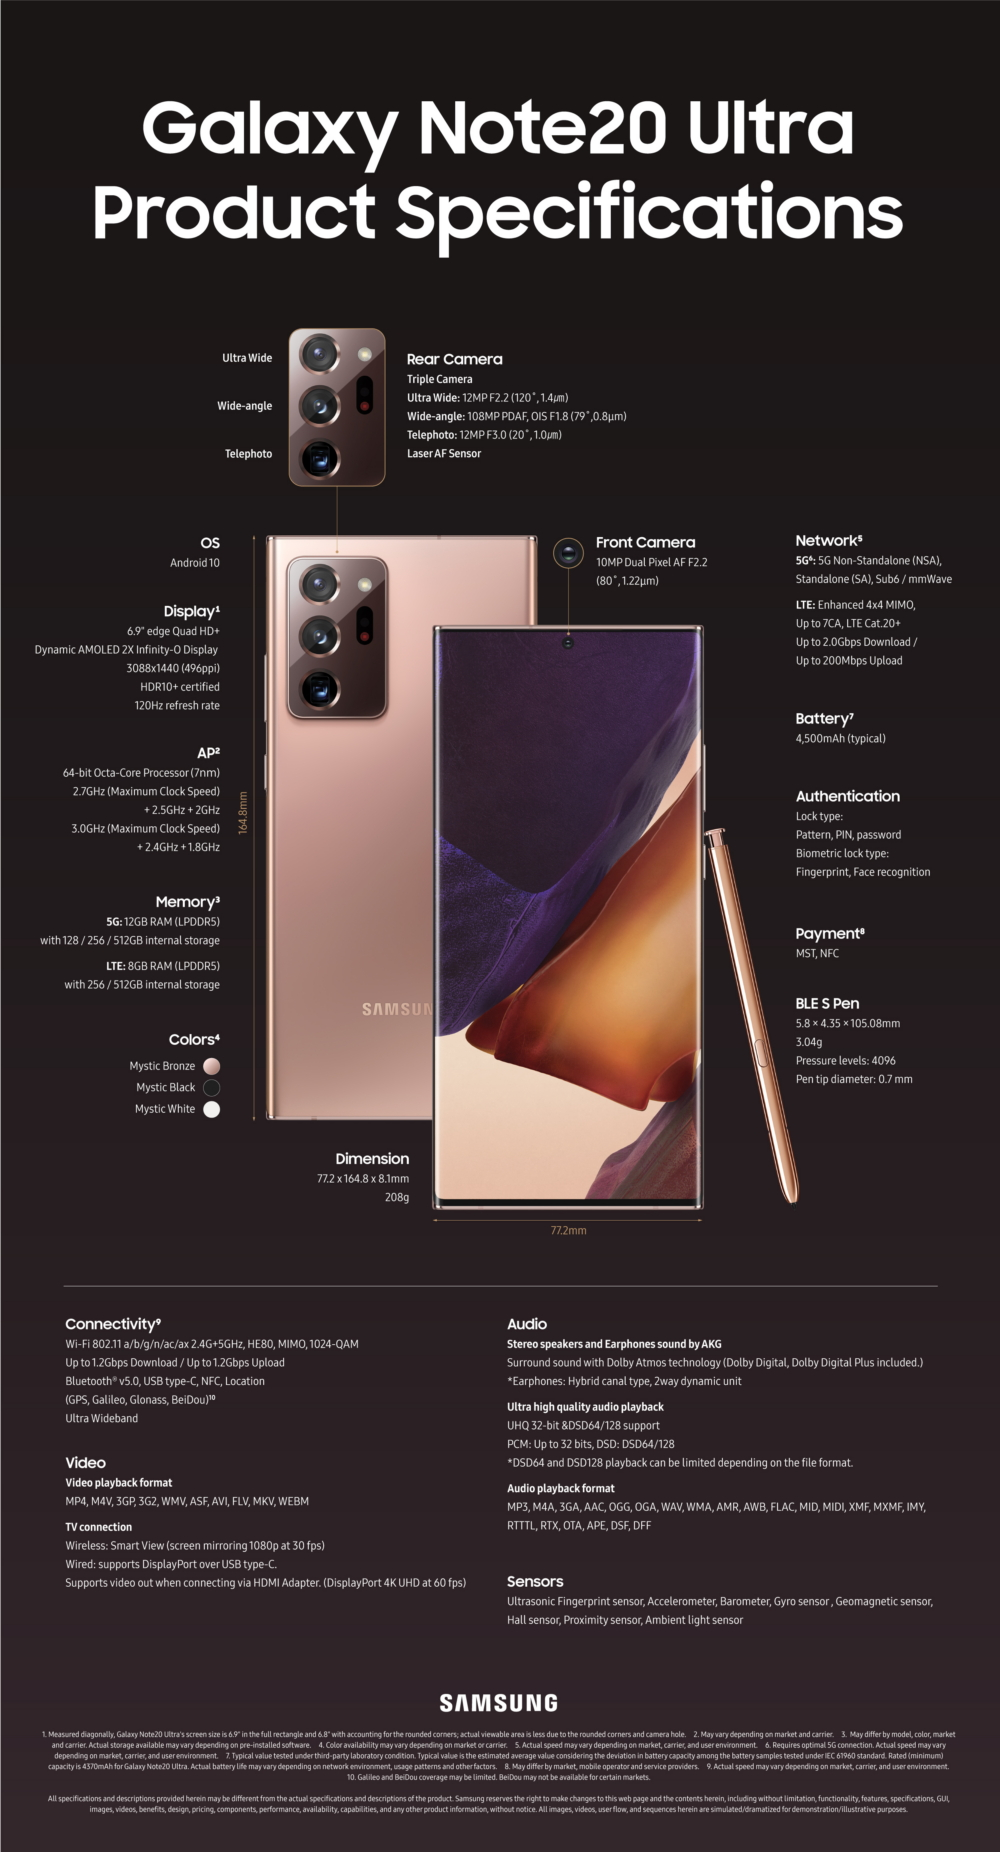 Note20 Ultra Specifications